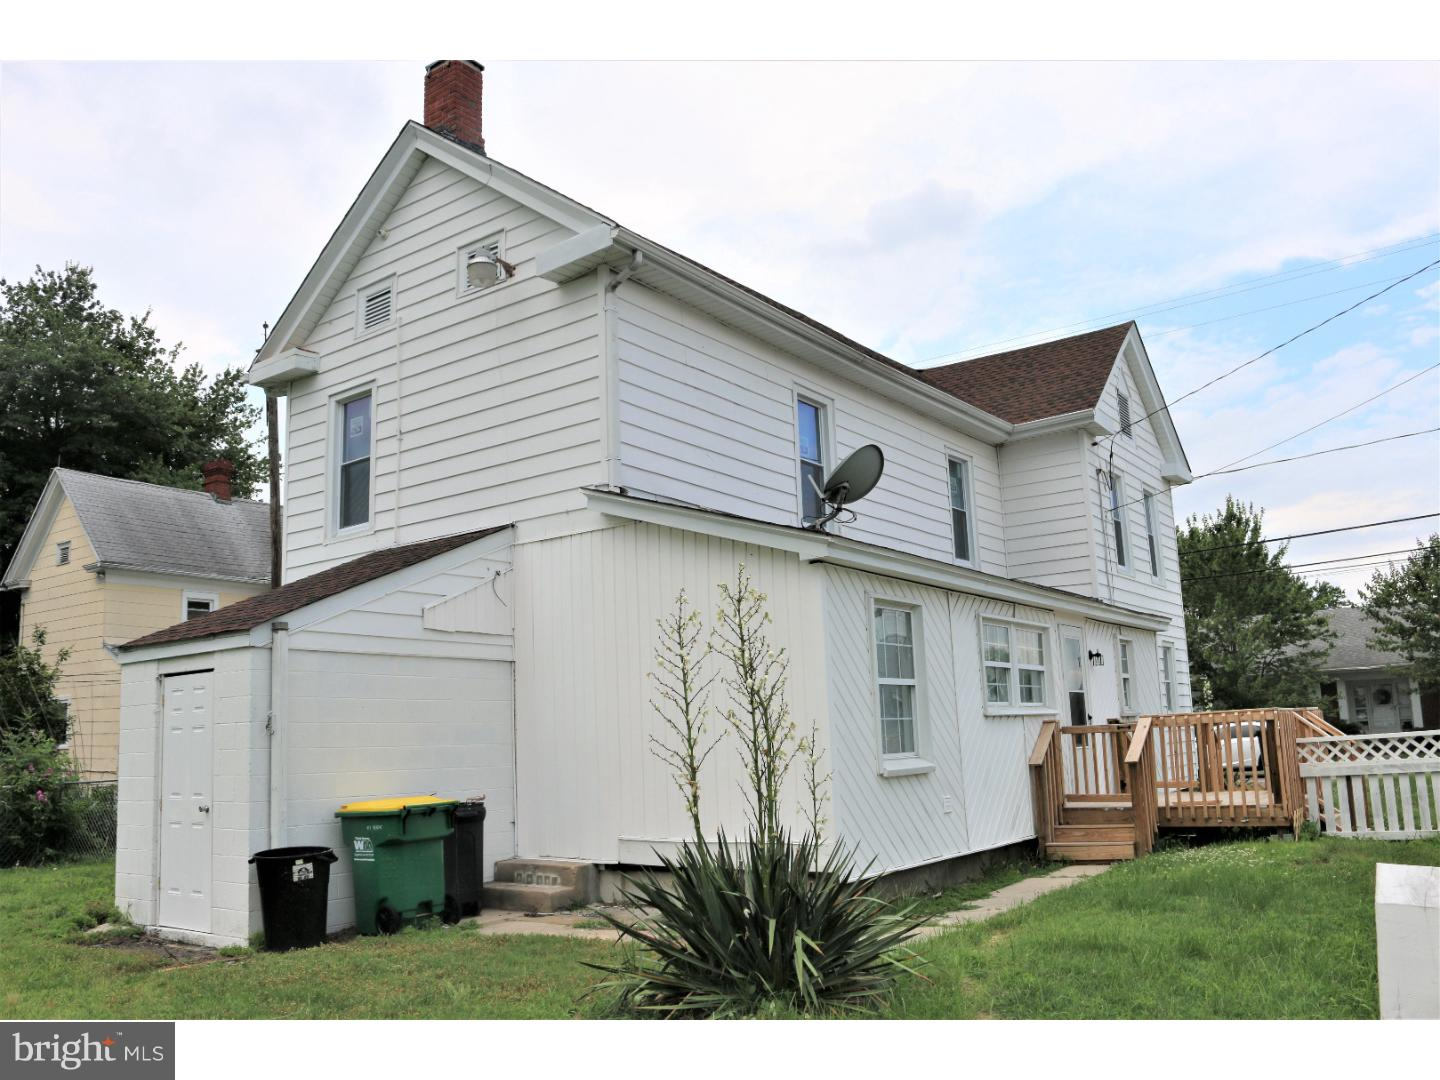 Single Family Home for Sale at 206 MARKET Street Greenwood, Delaware 19950 United States